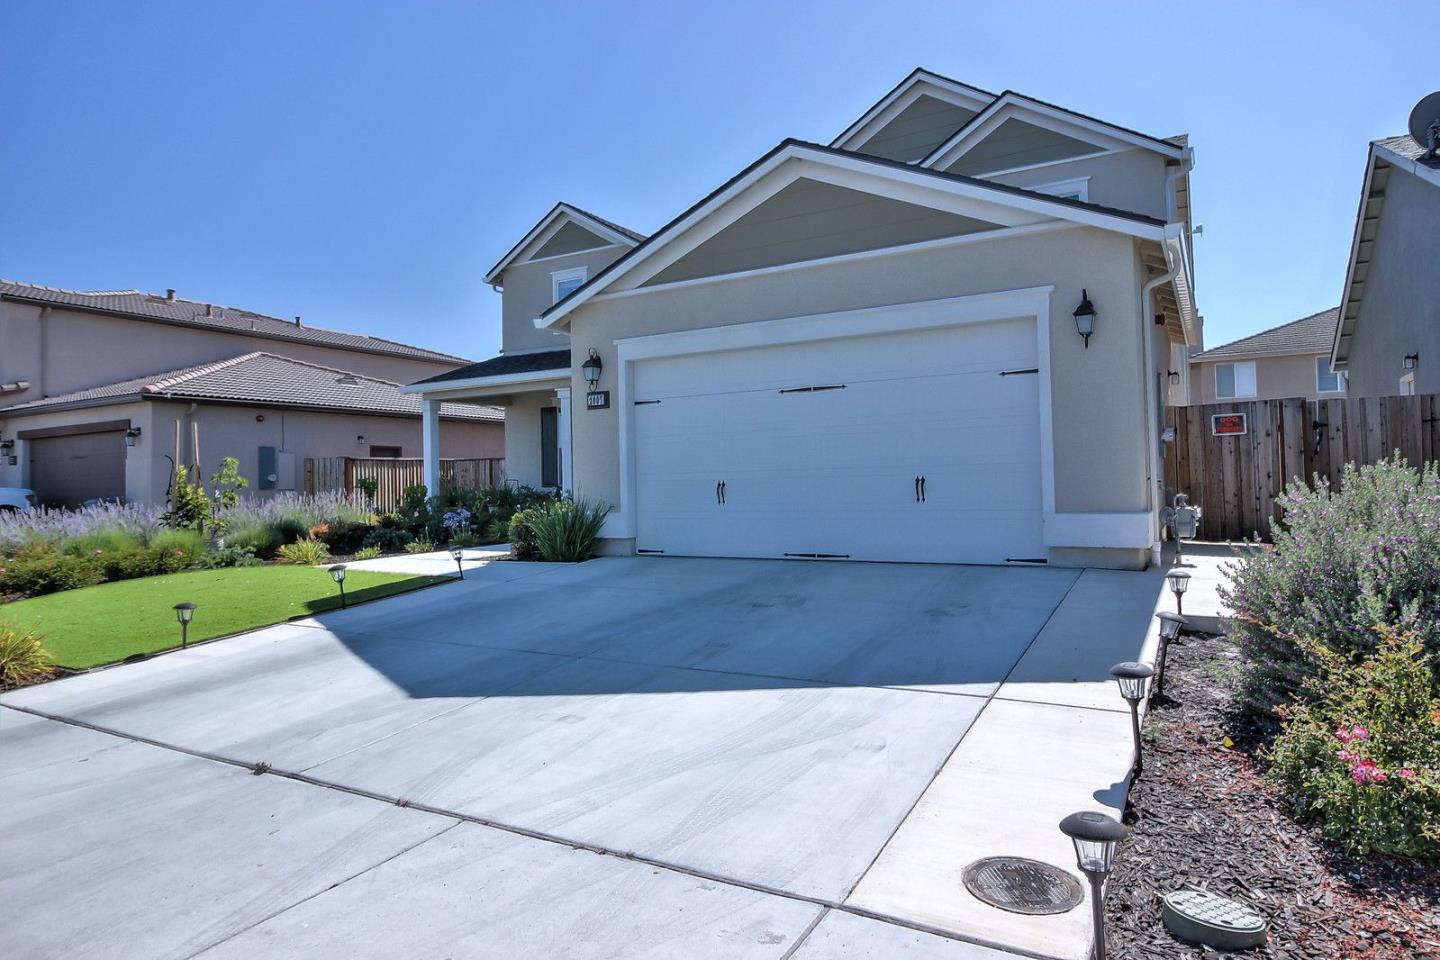 Additional photo for property listing at 2007 Bridlewood Street  Hollister, Kalifornien 95023 Vereinigte Staaten